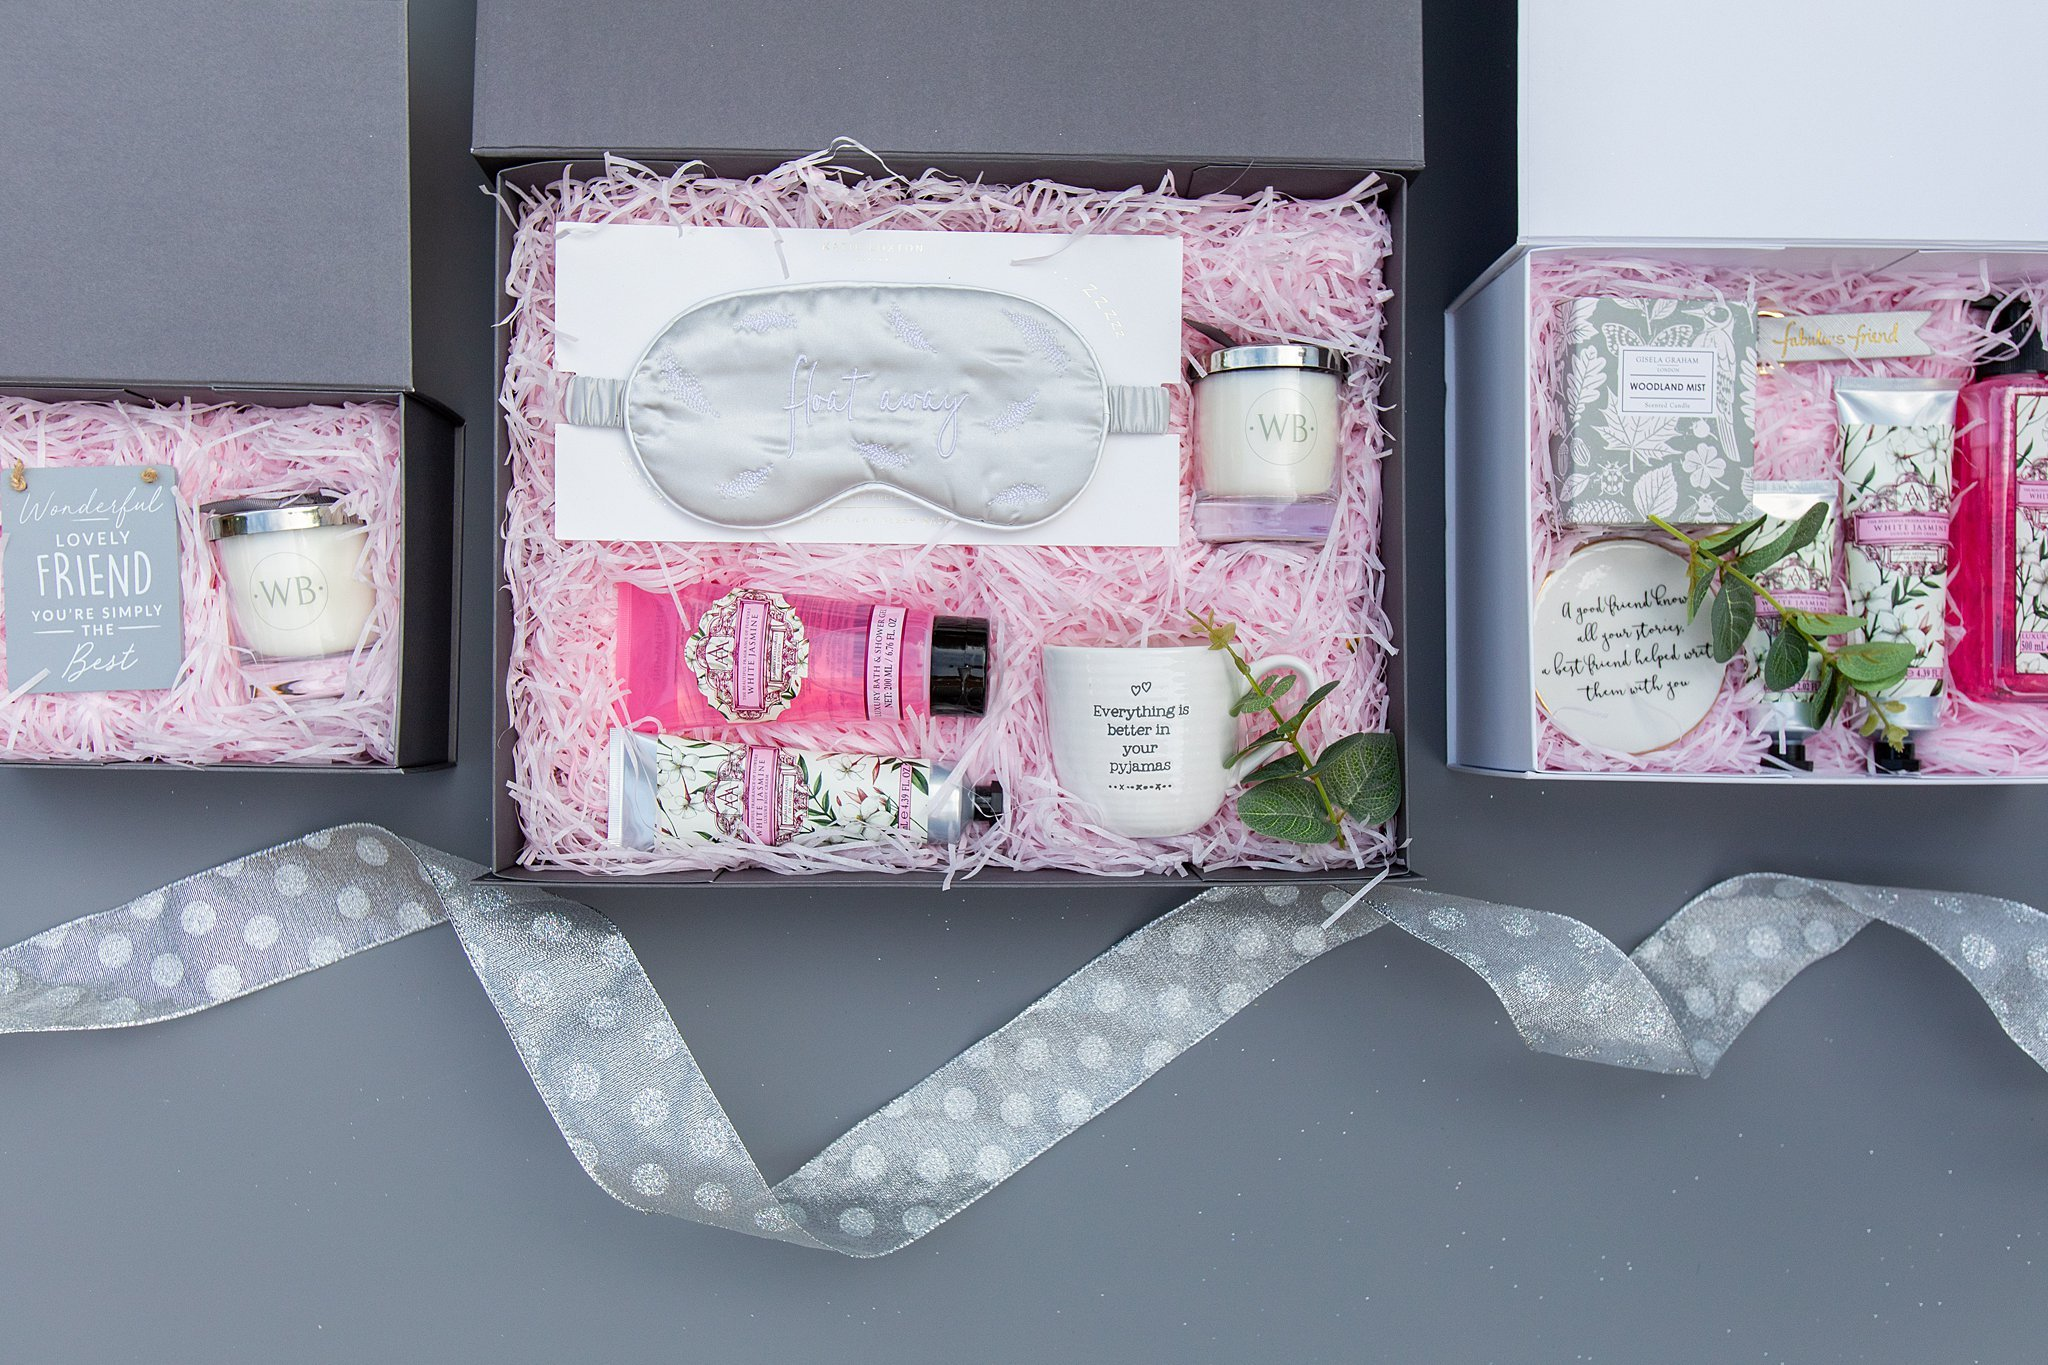 Product photography, lifestyle photography, beauty photography, gift box photography